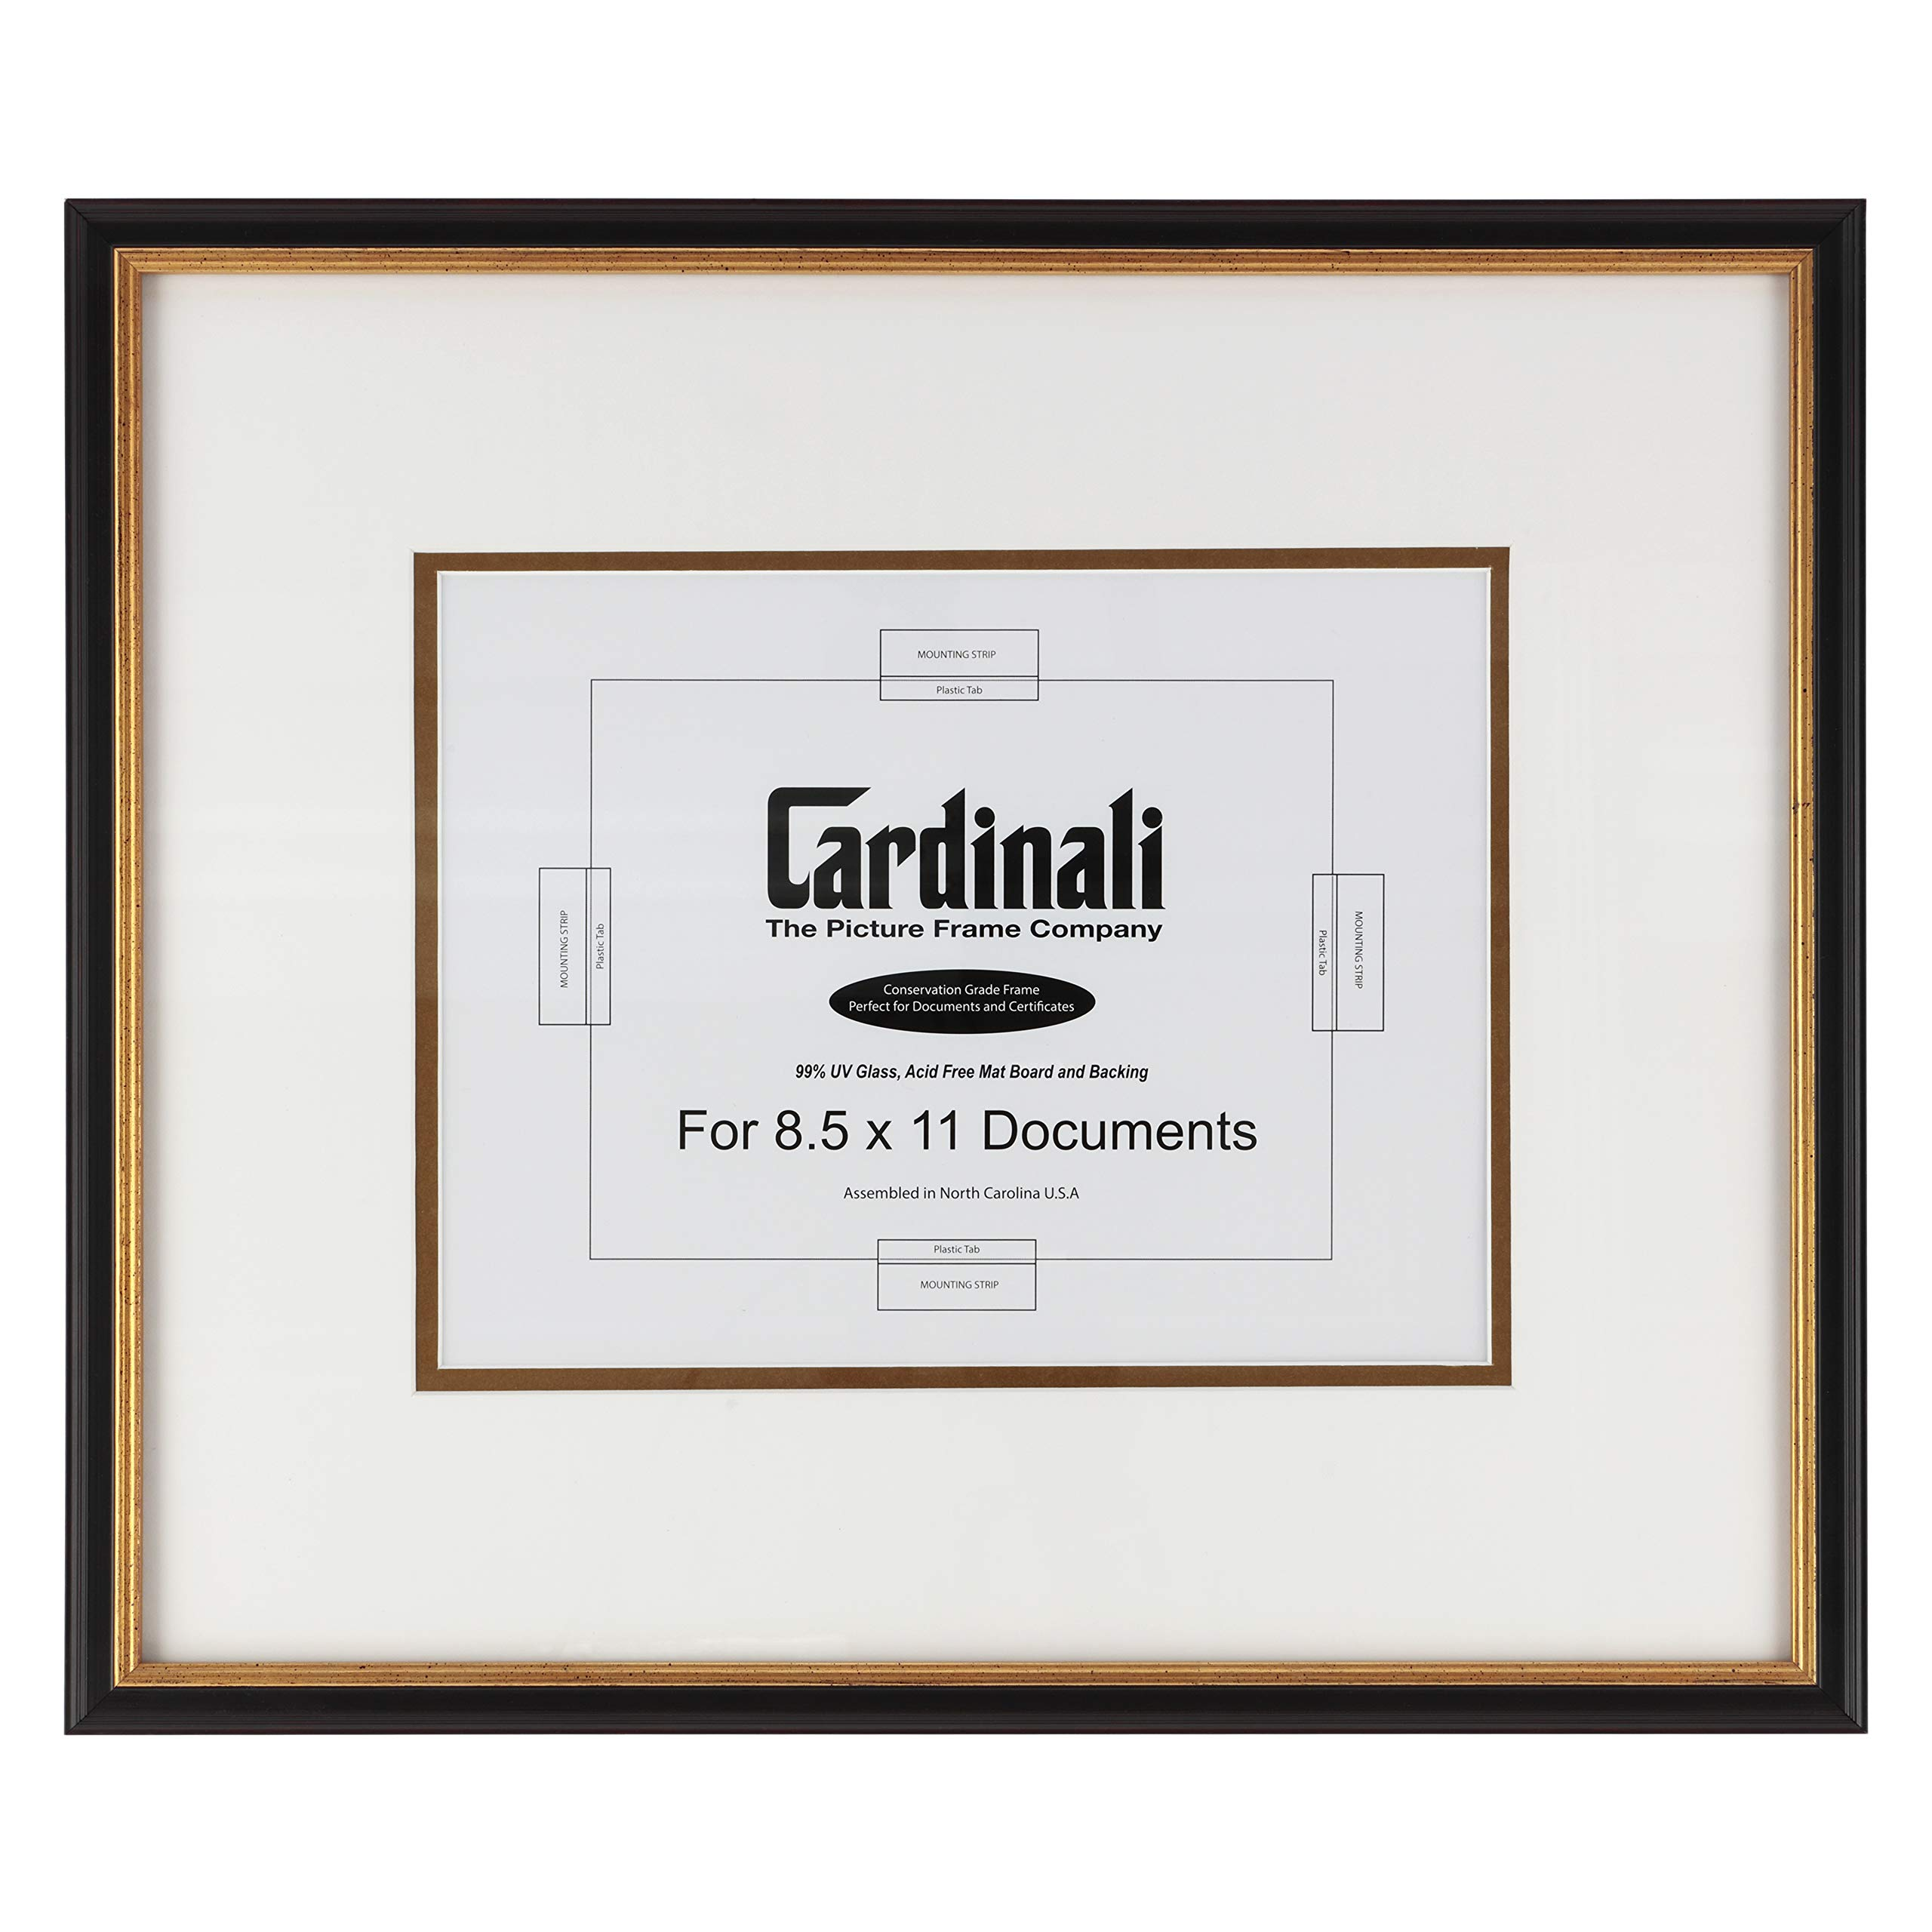 Cardinali Diploma Frame - for Archival University College High School Graduation Diploma, Document & Certificates, Real Wood with Glass & Hanging Hardware - Black & Gold - 8.5 x 11 Inch Opening, Made In USA